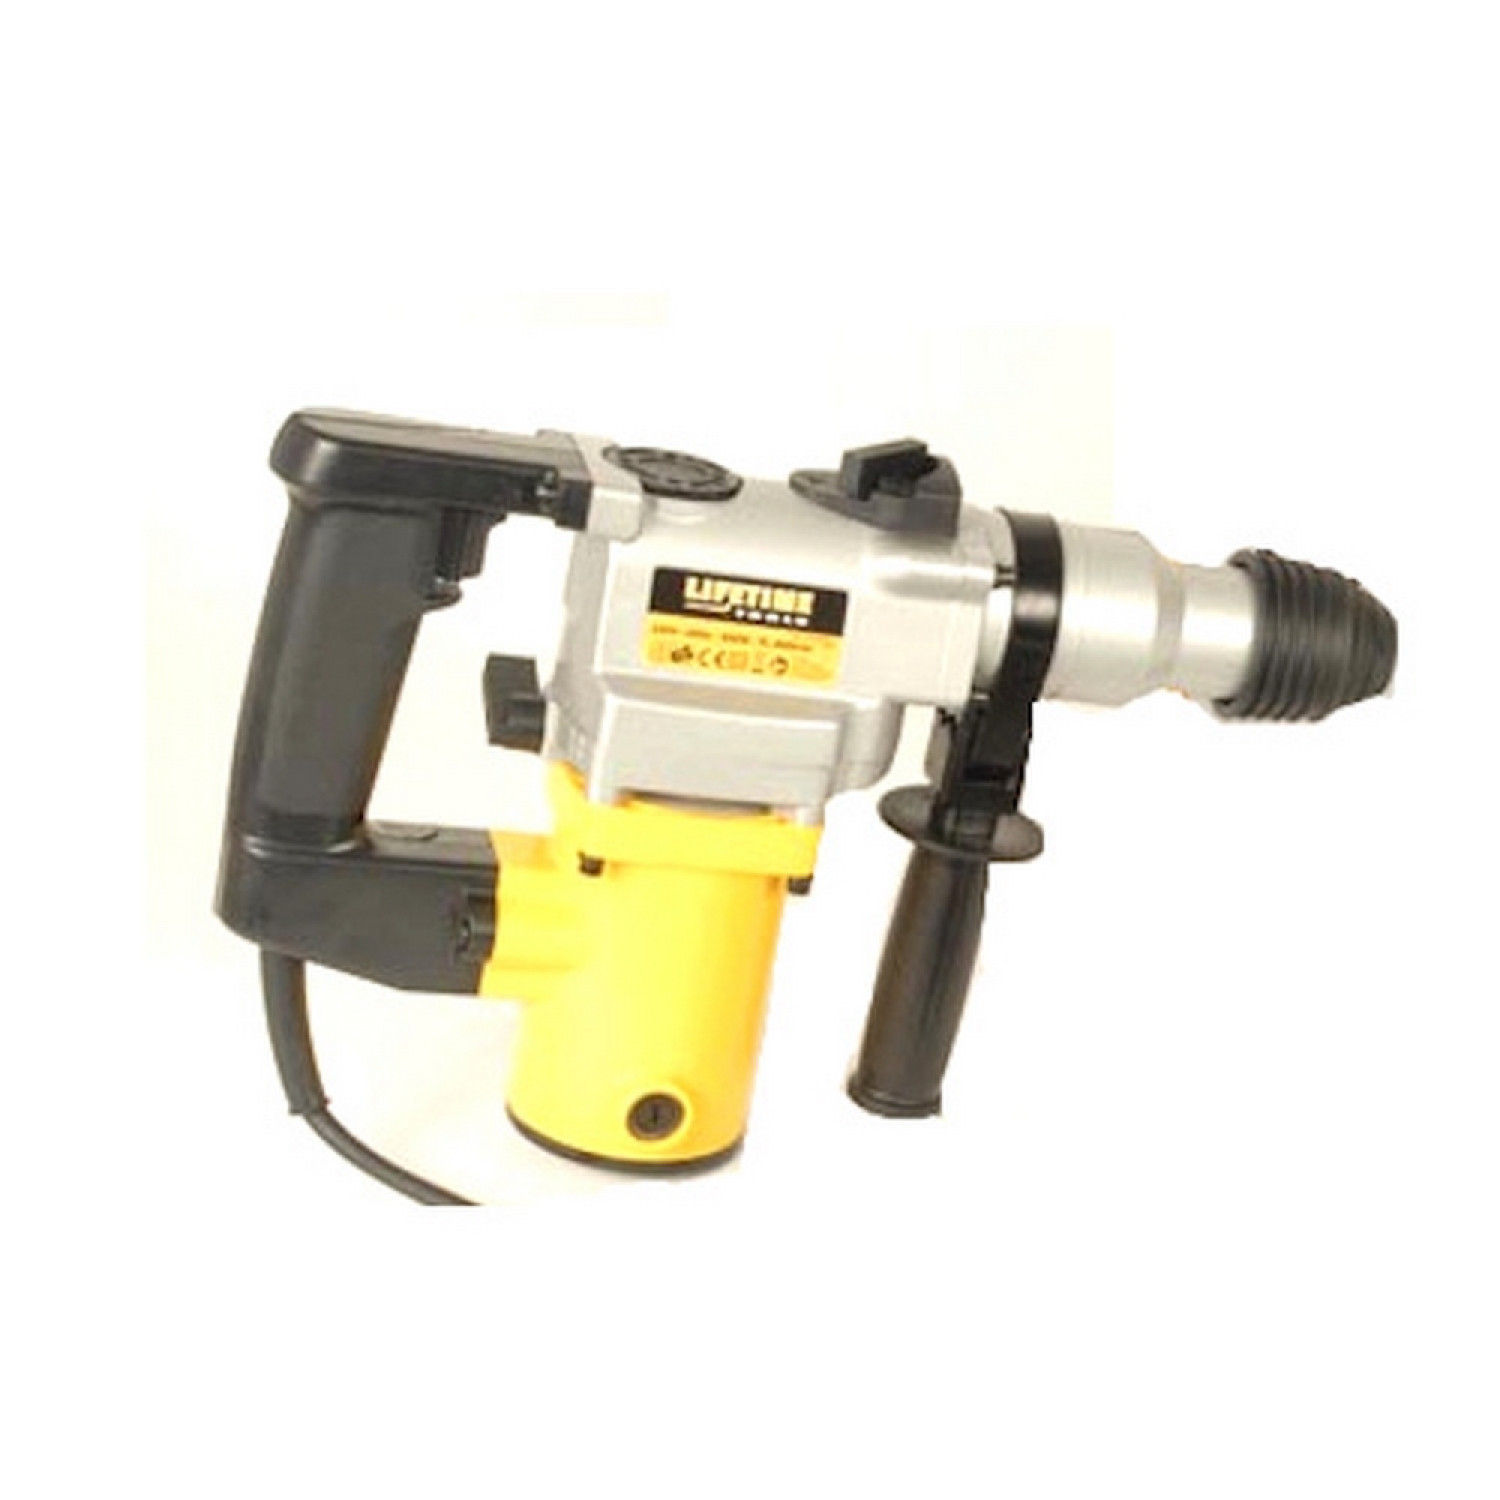 Marteau perforateur burineur - Lifetime tools - 850W - Jaune